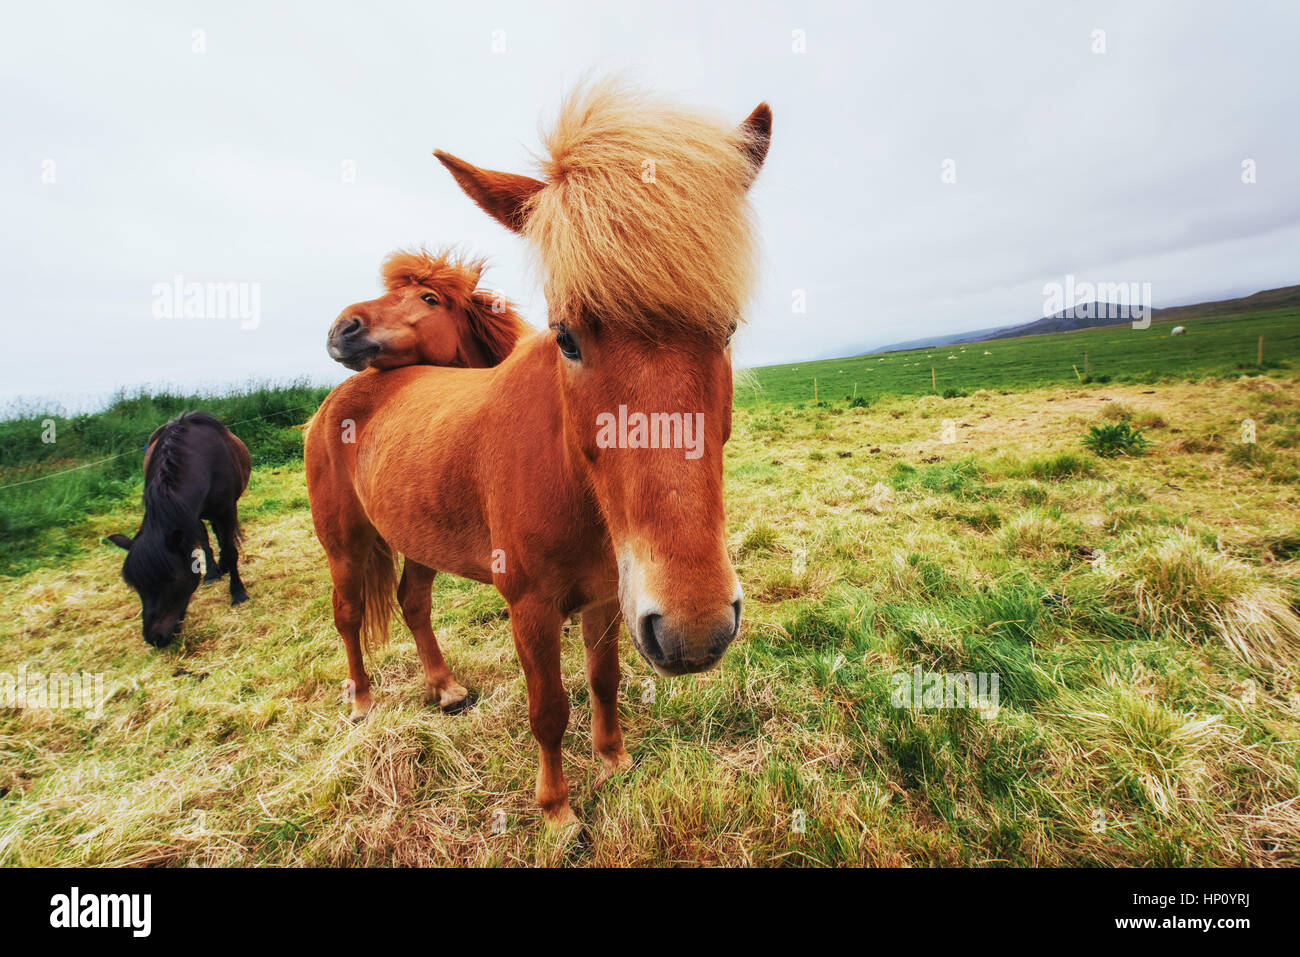 Icelandic horses in the pasture overlooking the mountains - Stock Image